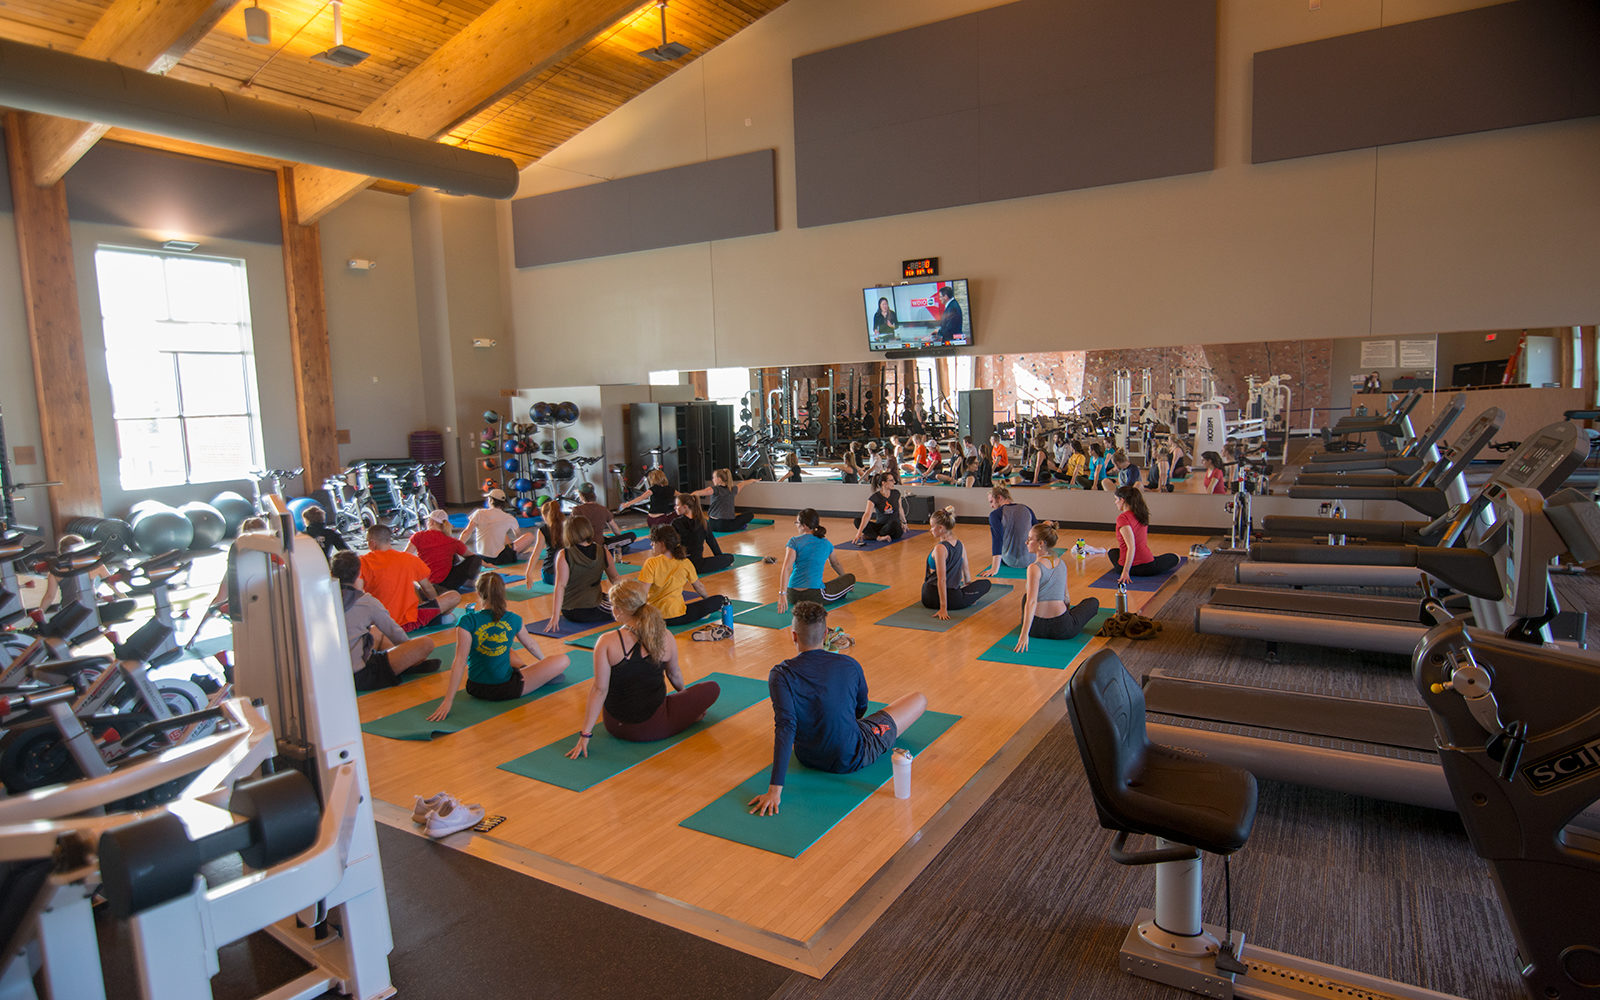 Yoga in the fitness center